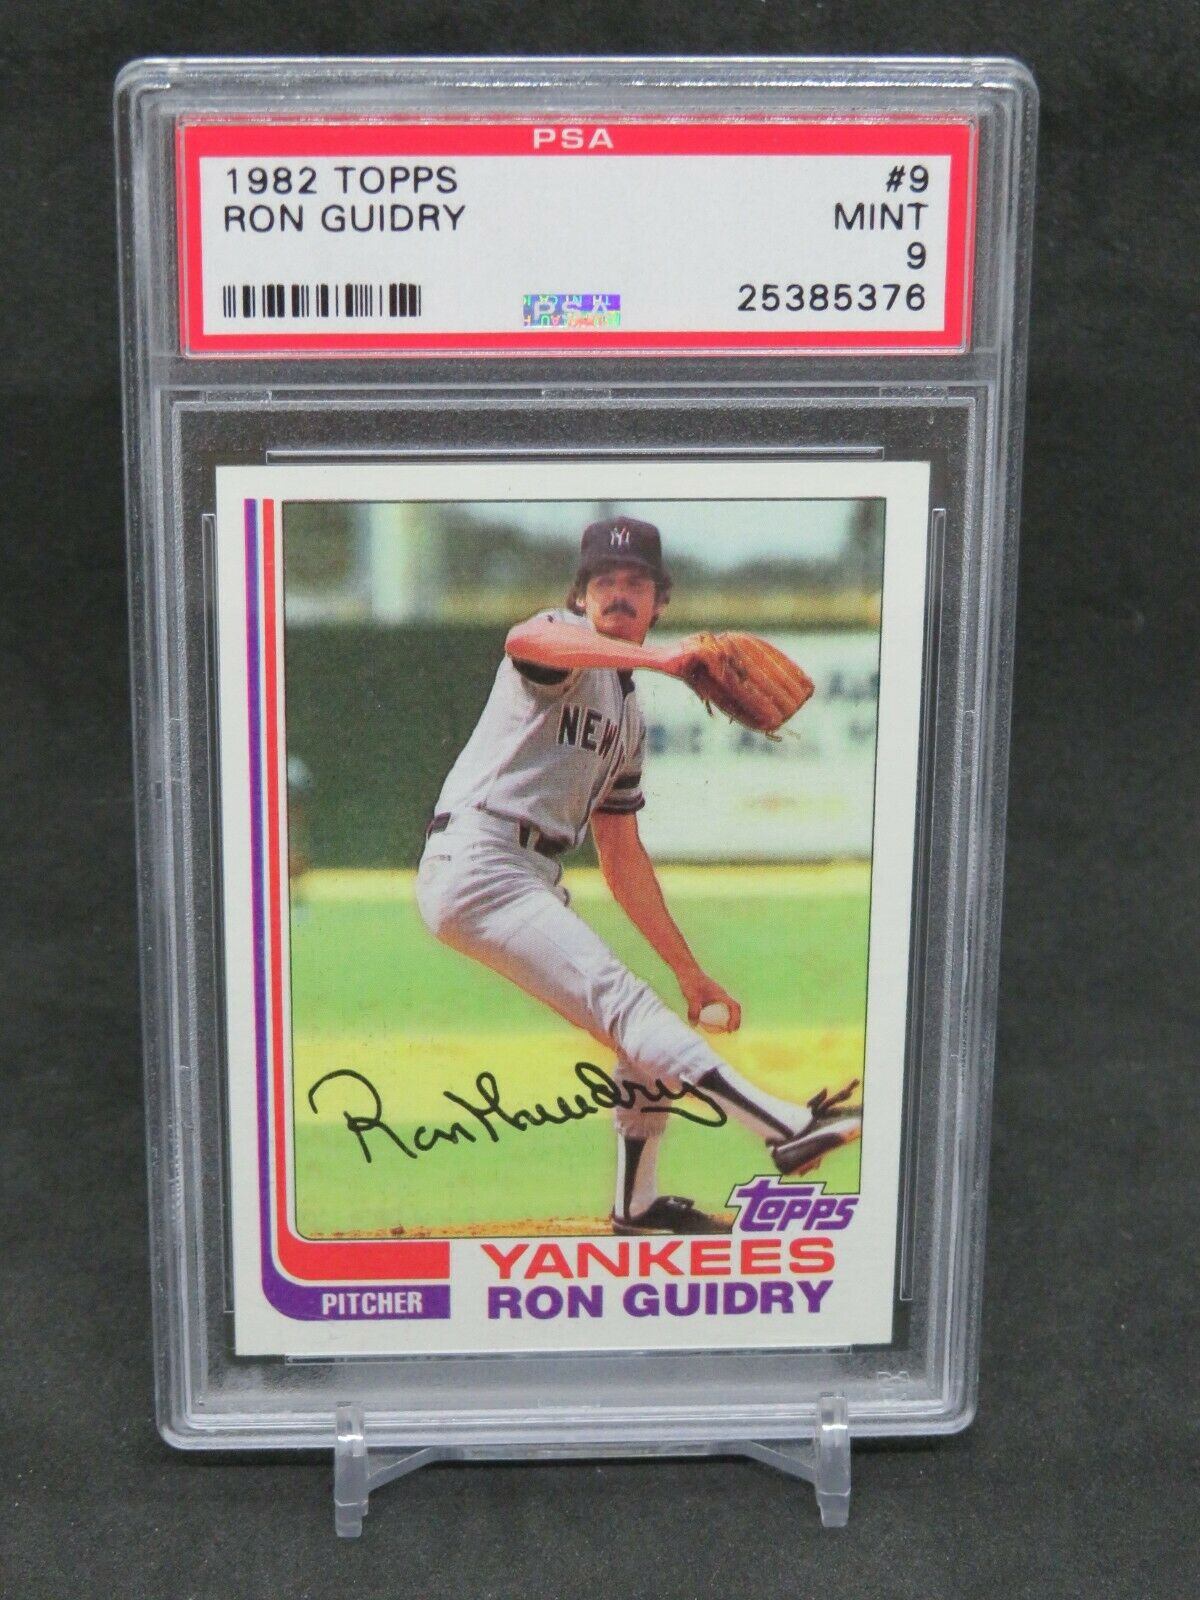 1982 TOPPS RON GUIDRY #9 PSA 9 MINT NEW YORK YANKEES MS - Image 1